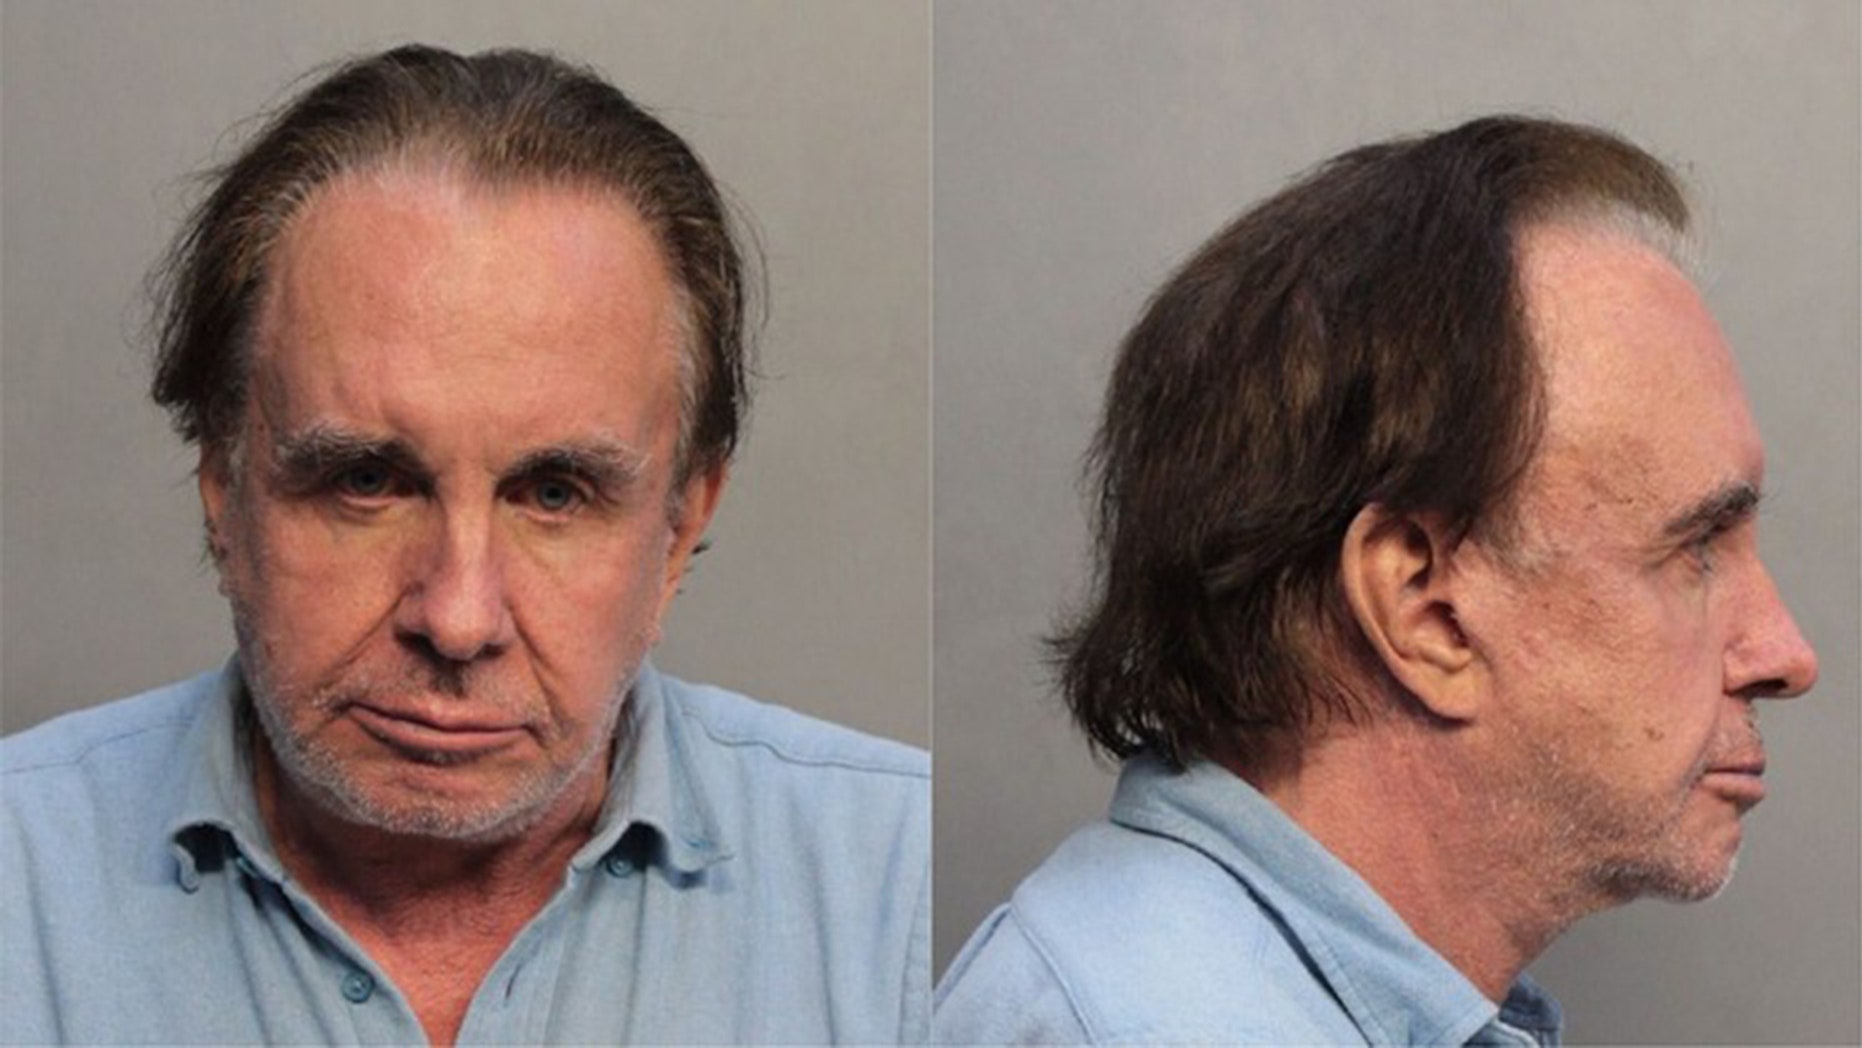 Walter Stolper, 73, is accused of targeting Jews when attempting to torch a Miami apartment building.